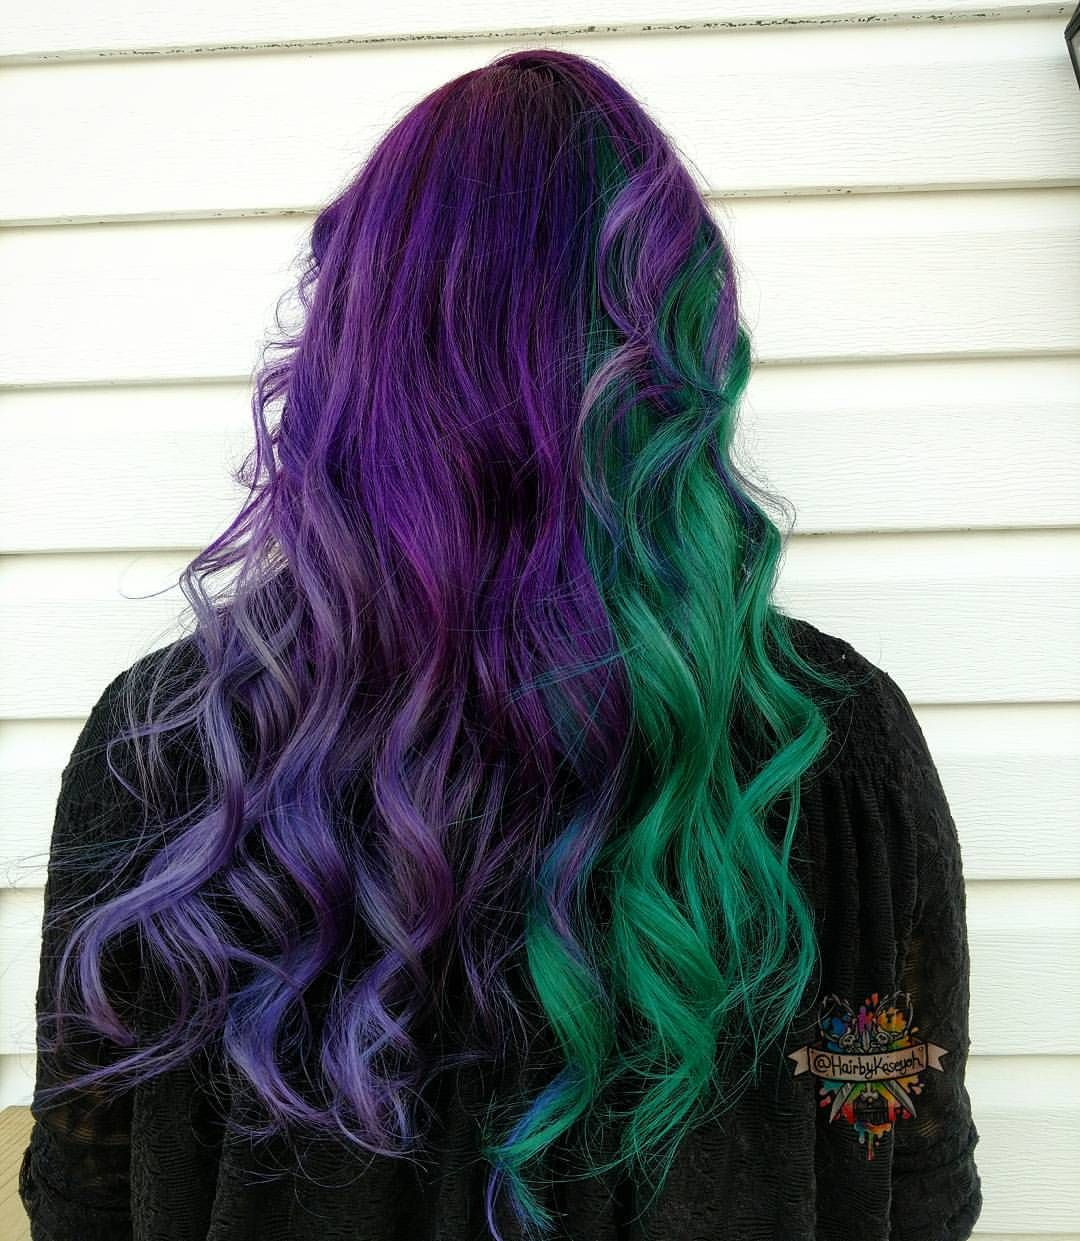 3 240 Likes 14 Comments Kasey Ohara Hairbykaseyoh On Instagram This Babe Came To Me And Said I Can T D Split Dyed Hair Split Hair Purple And Green Hair